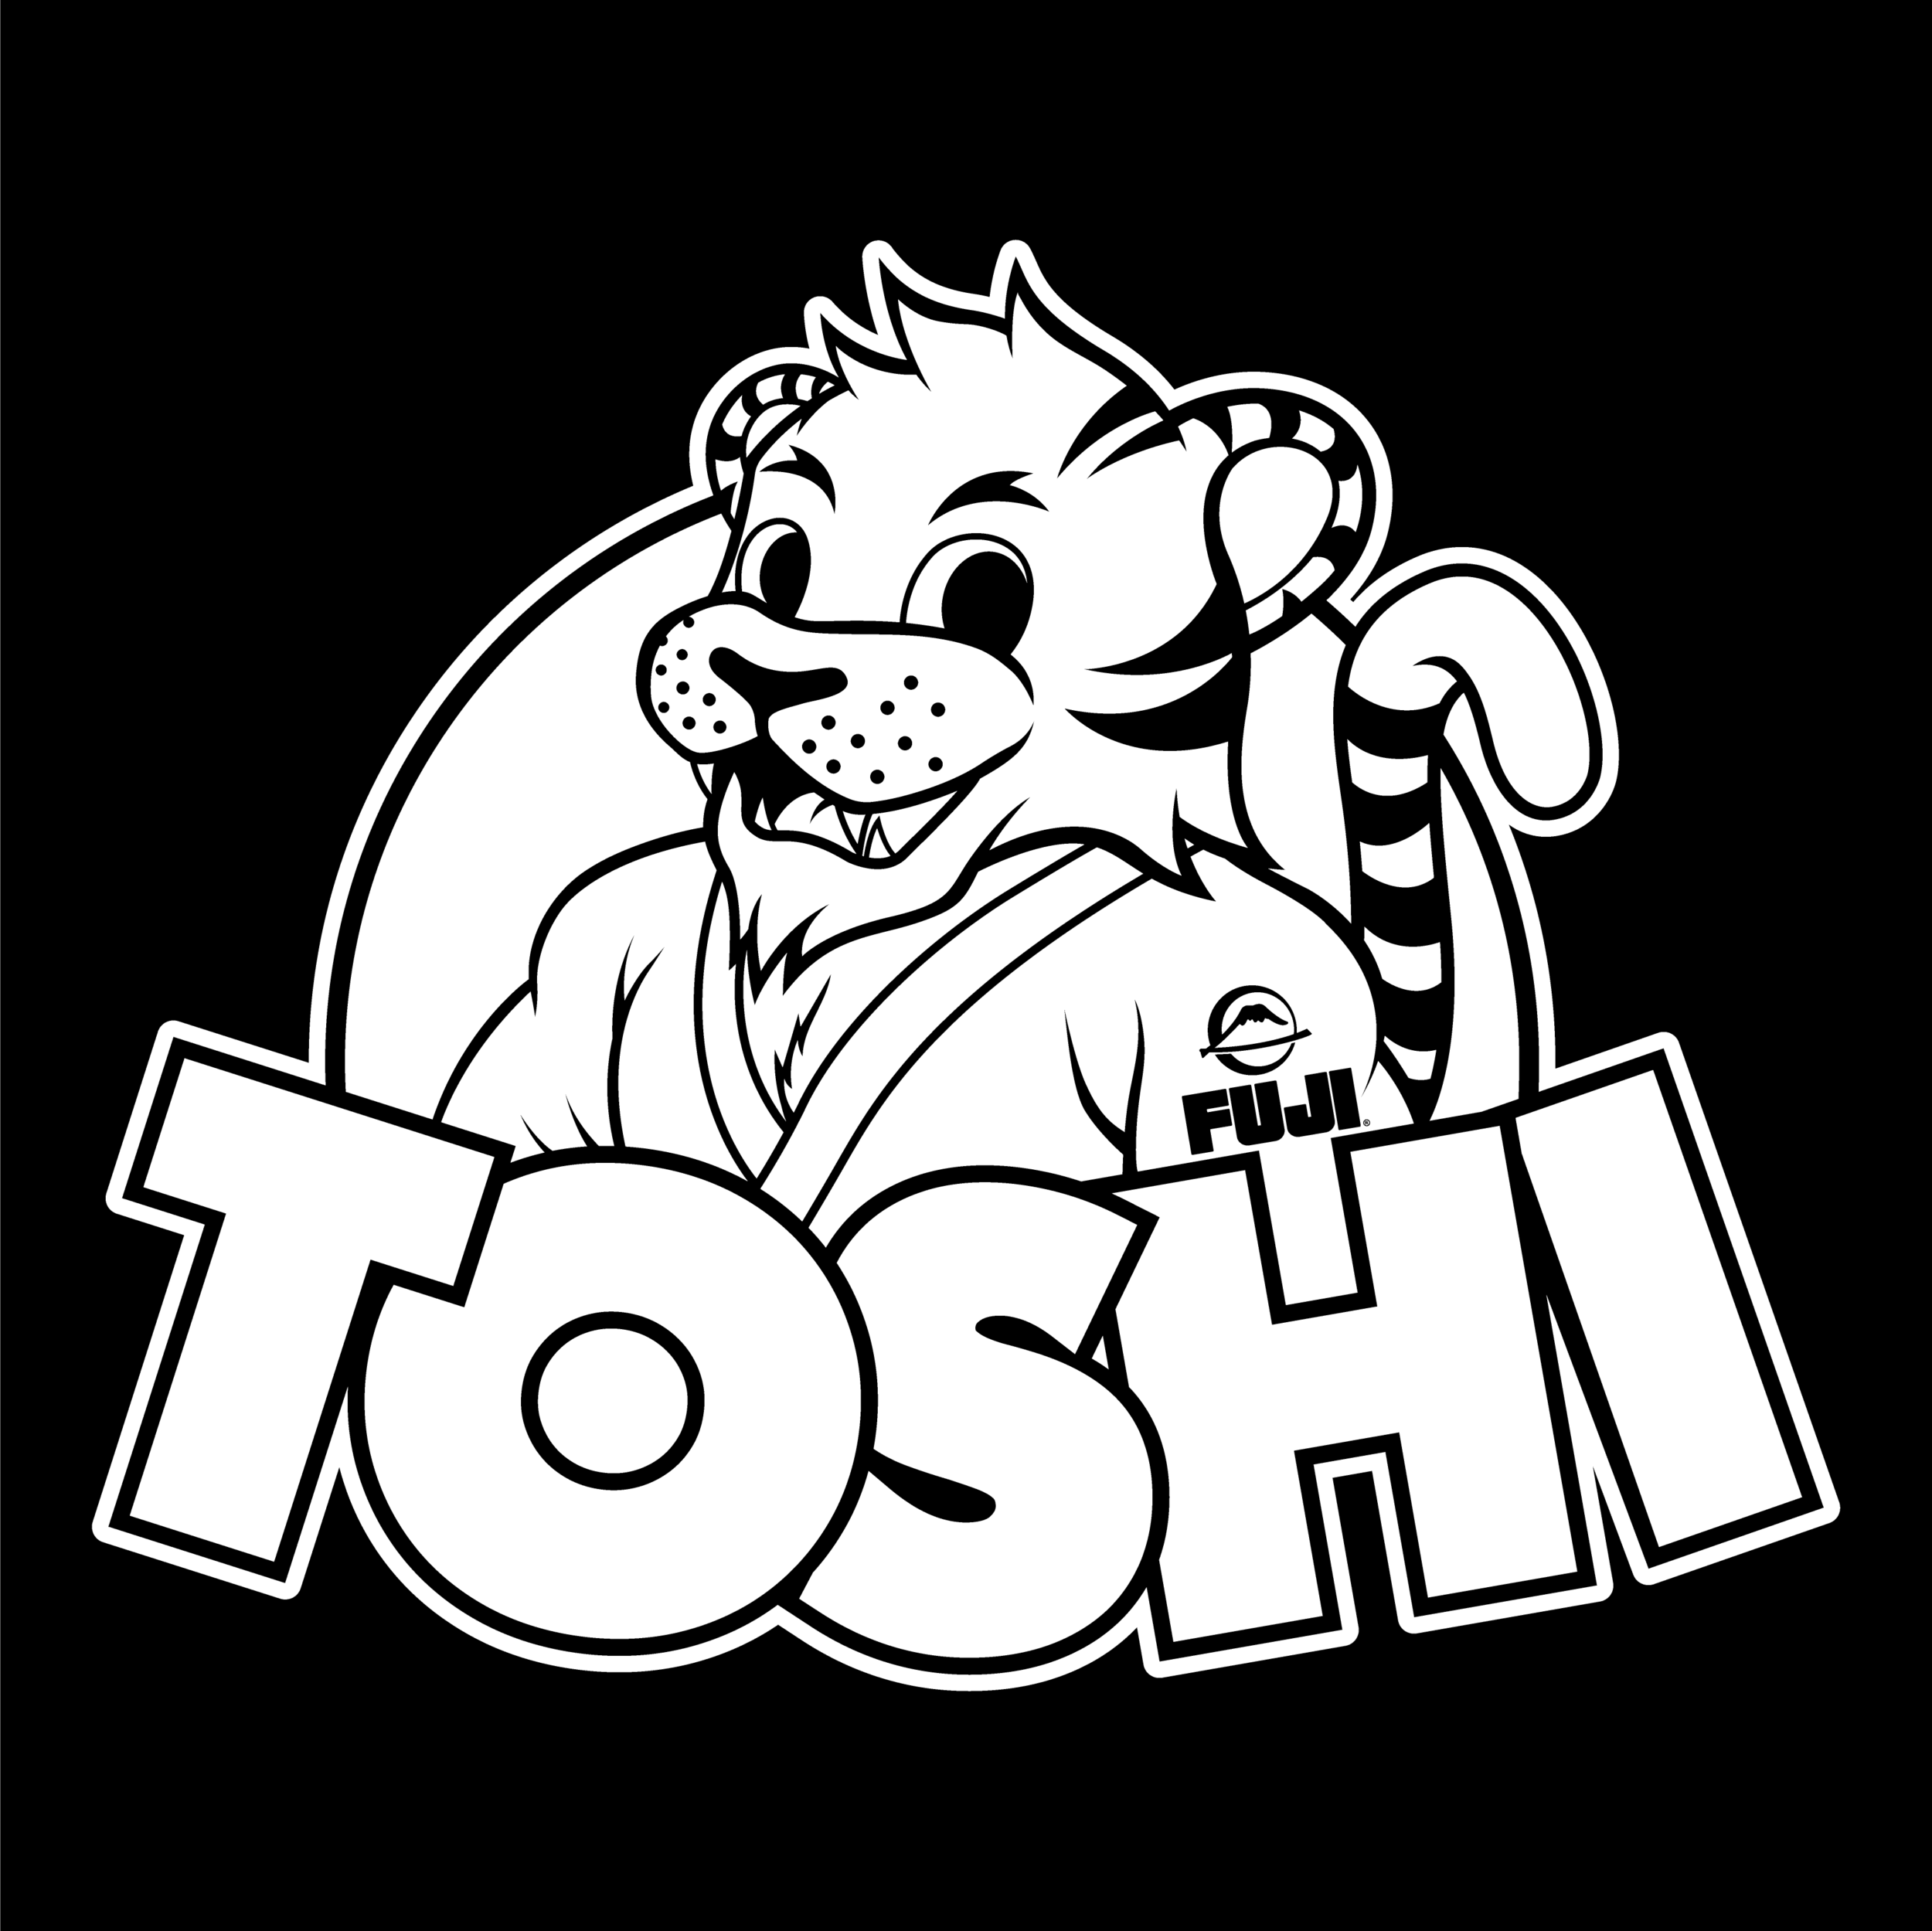 ODS-Fuji-Toshi-Apparel-Final_Full Toshi White.png